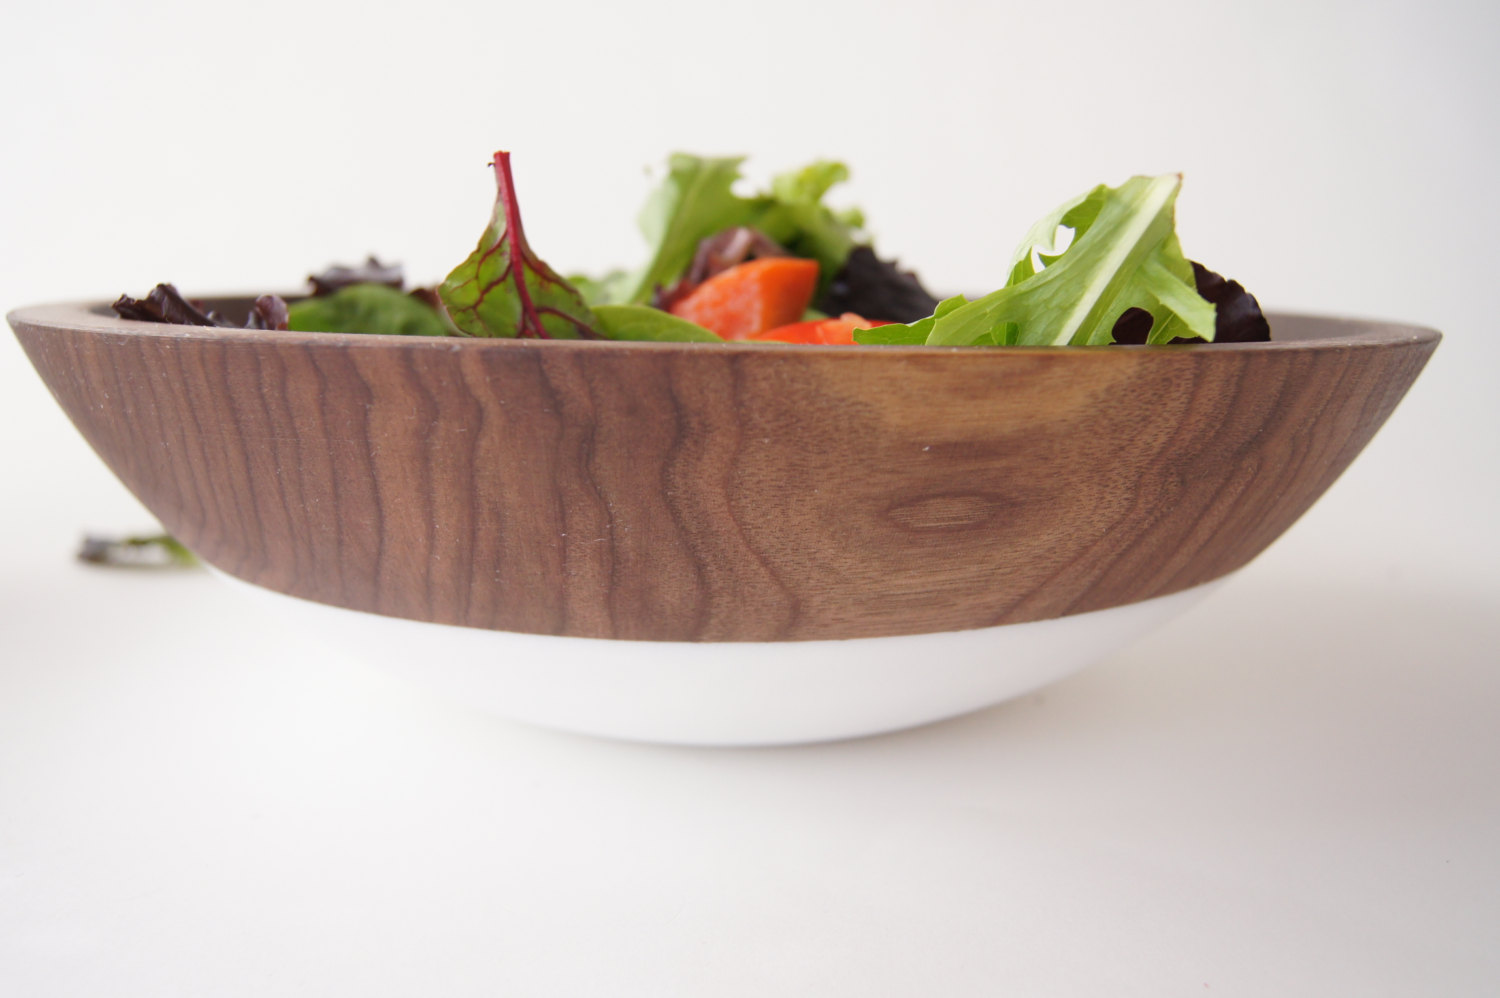 10 Serving Bowls Just Waiting For Summer Salads